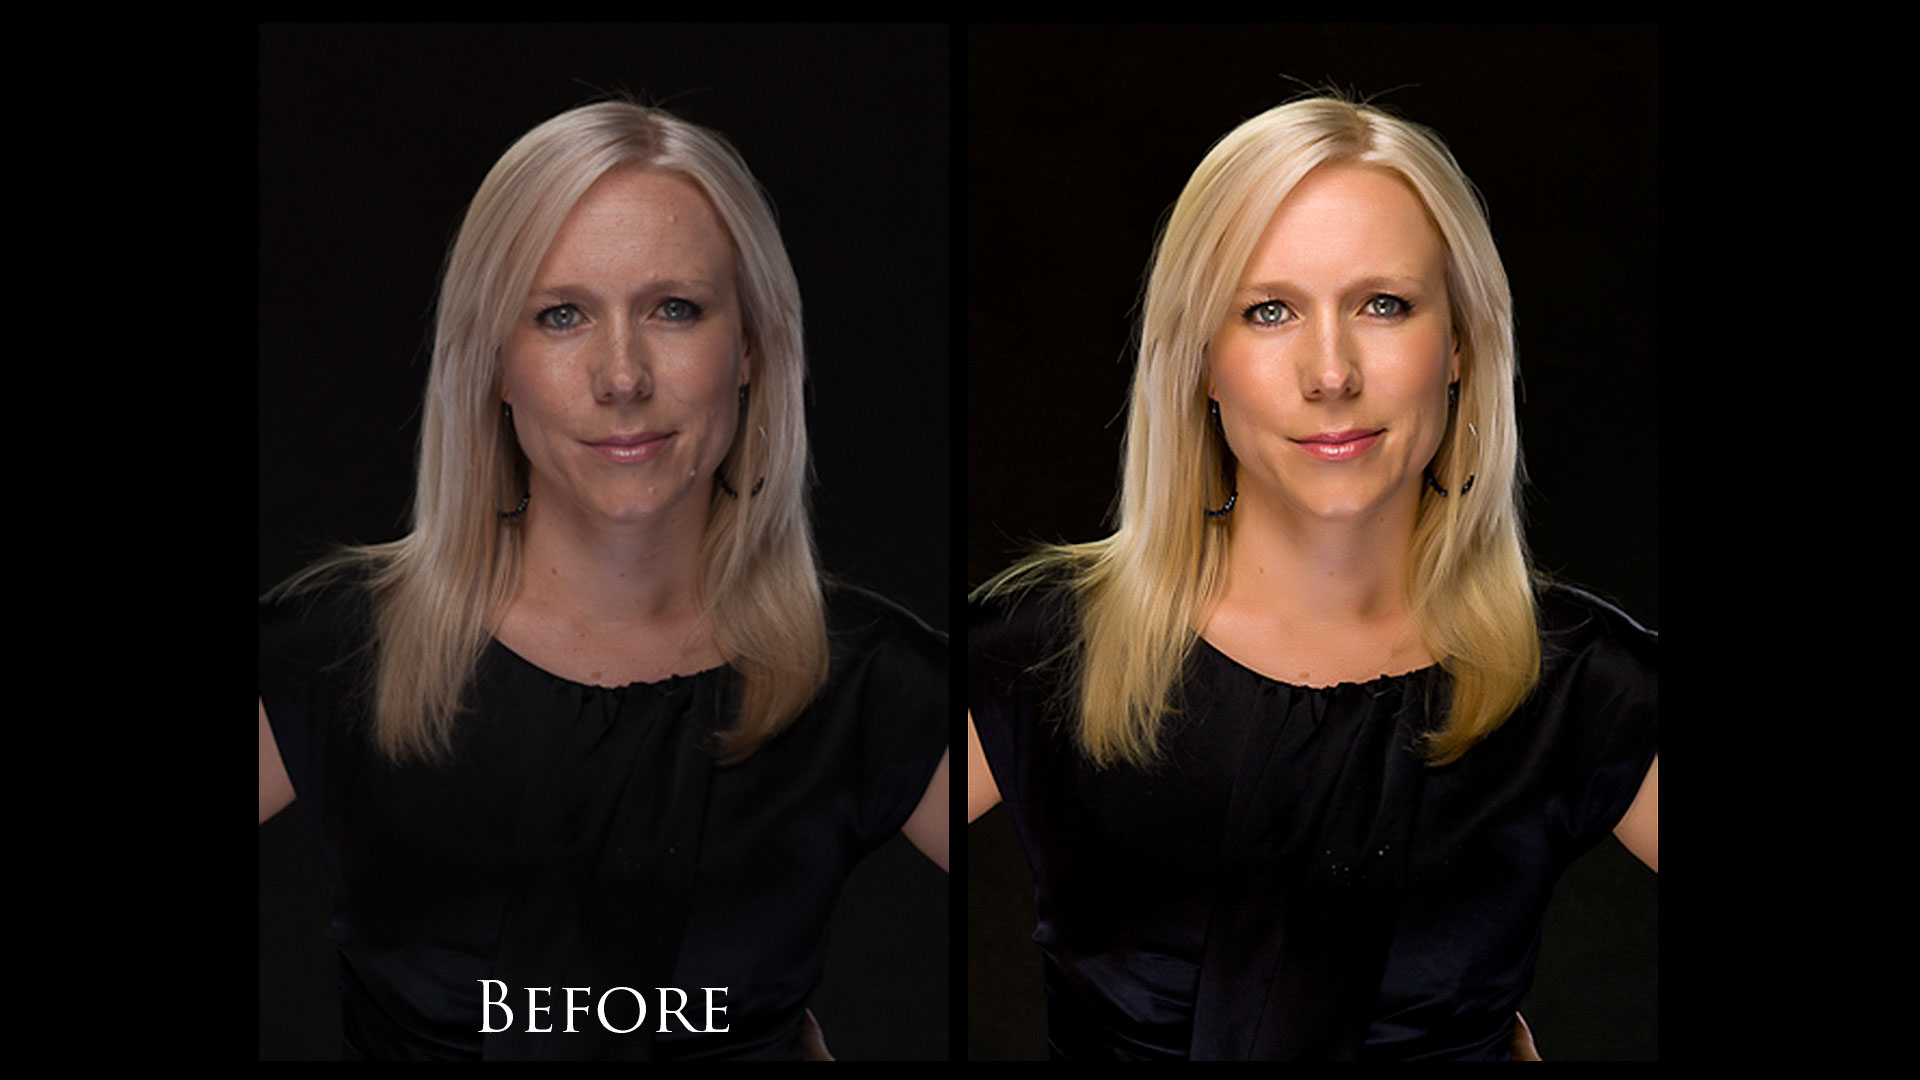 Chris_Mitchell_Studios-BeforeAfter-07